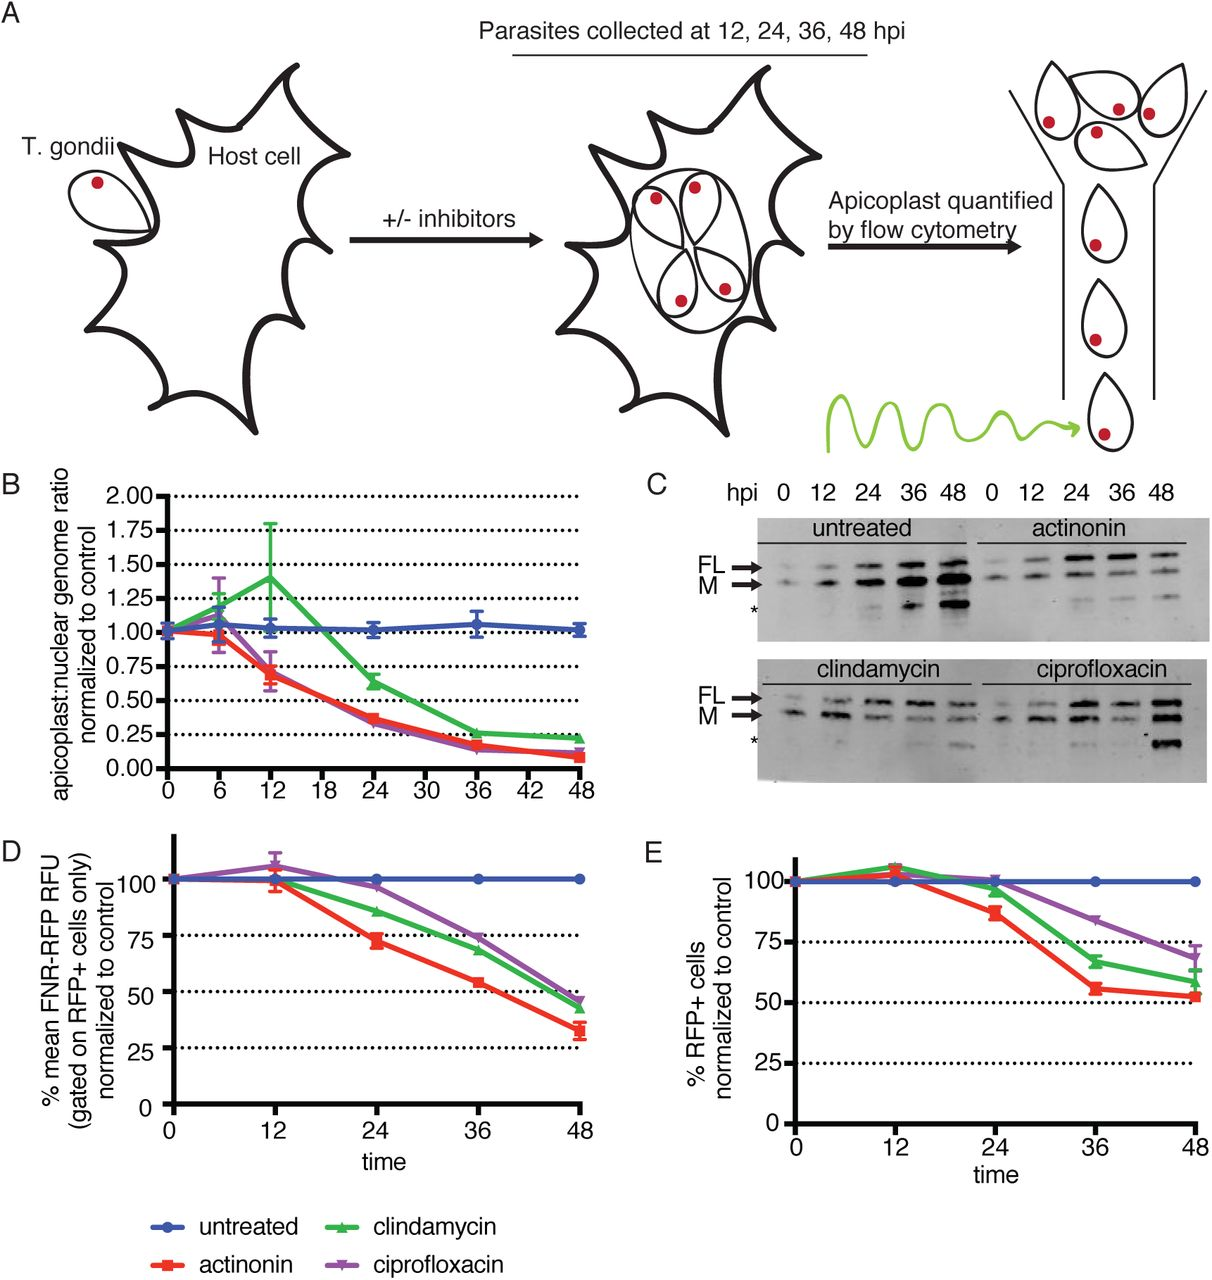 Host cell metabolism contributes to delayed-death kinetics